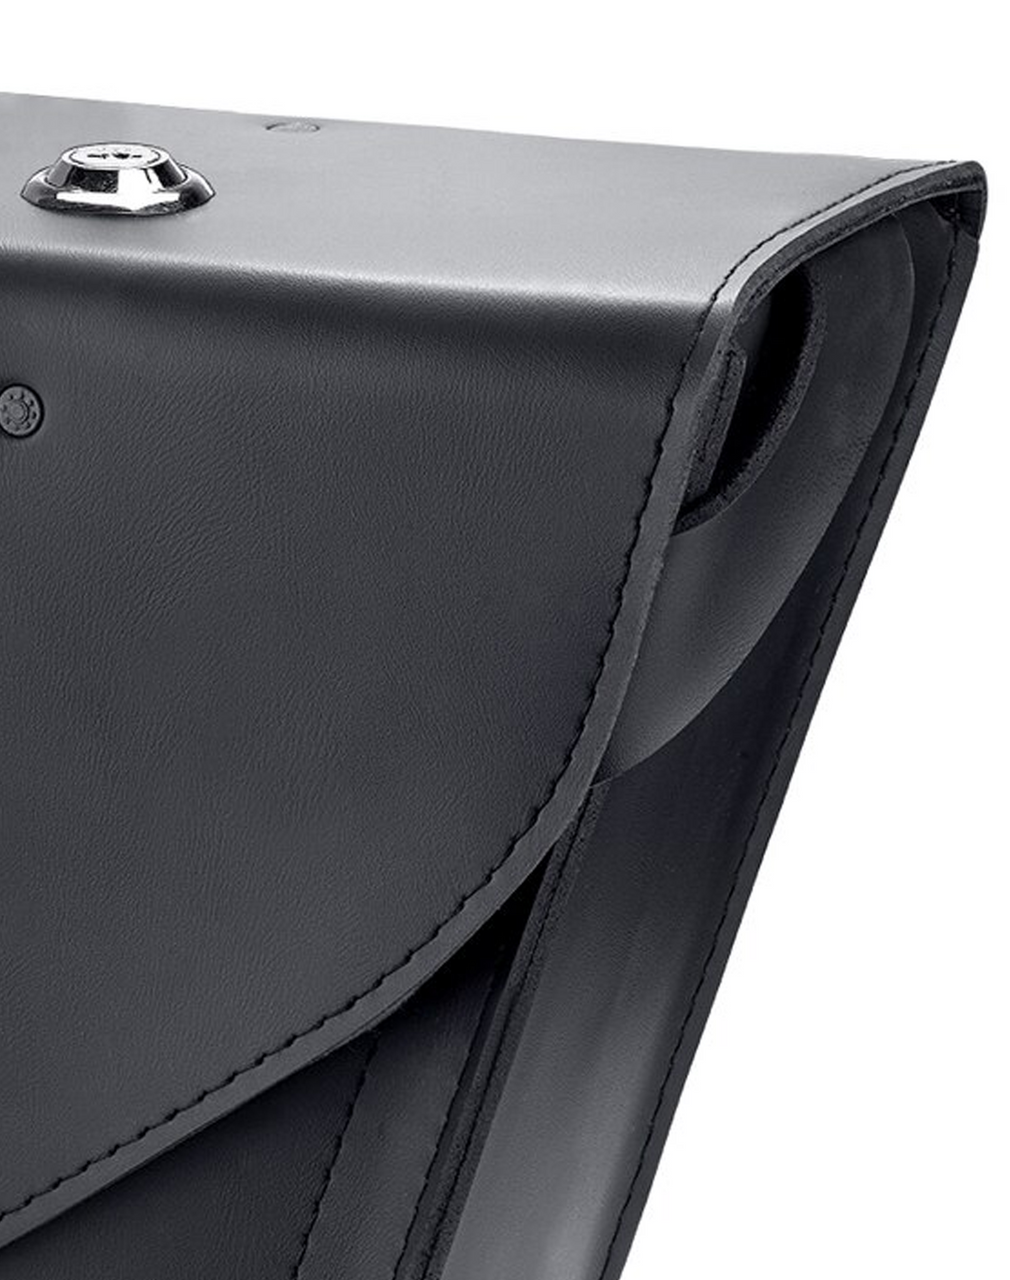 Viking Dark Age Compact Plain Leather Motorcycle Saddlebags For Sportster Seventy Two 72 Close up view